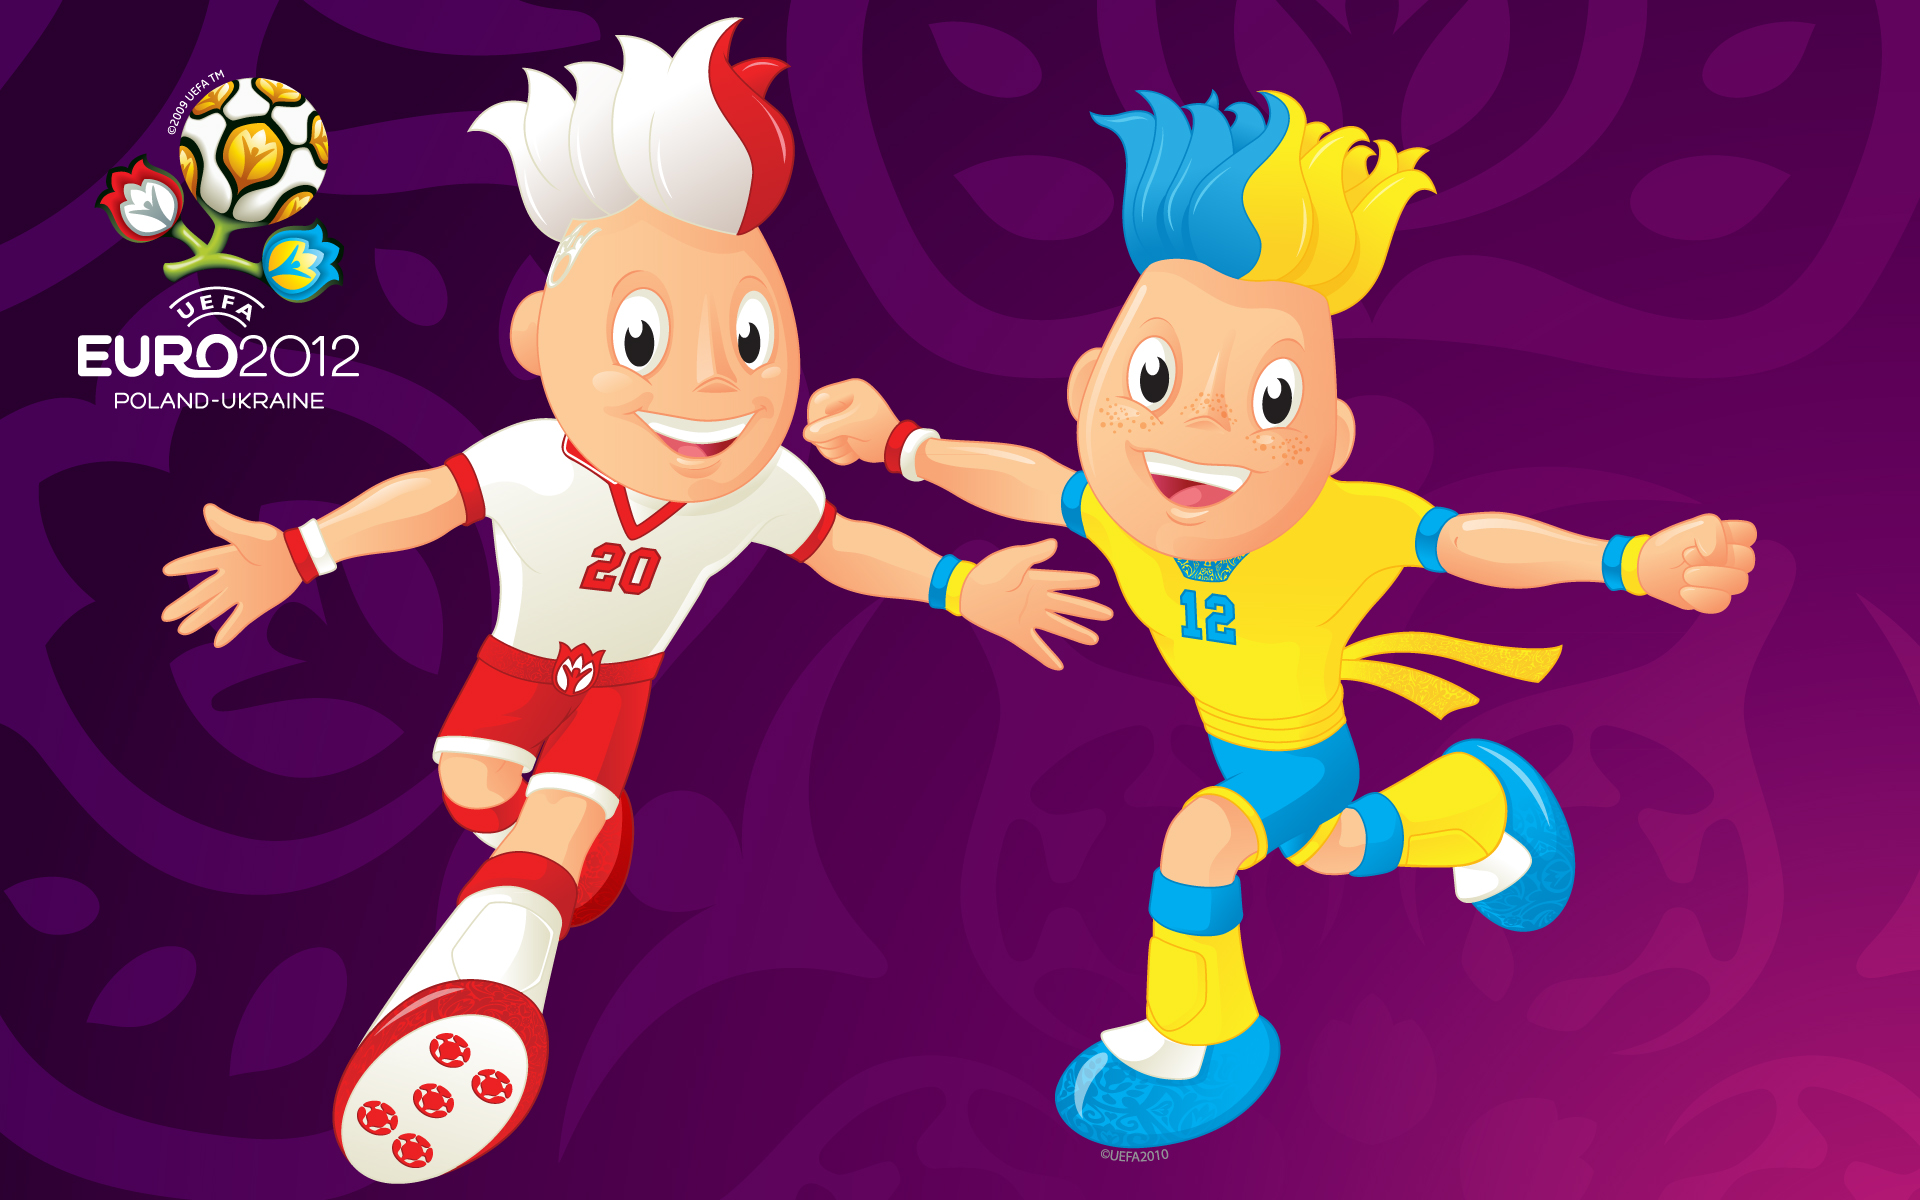 Good luck to all Euro 2012 participants! · Ukraine travel blog